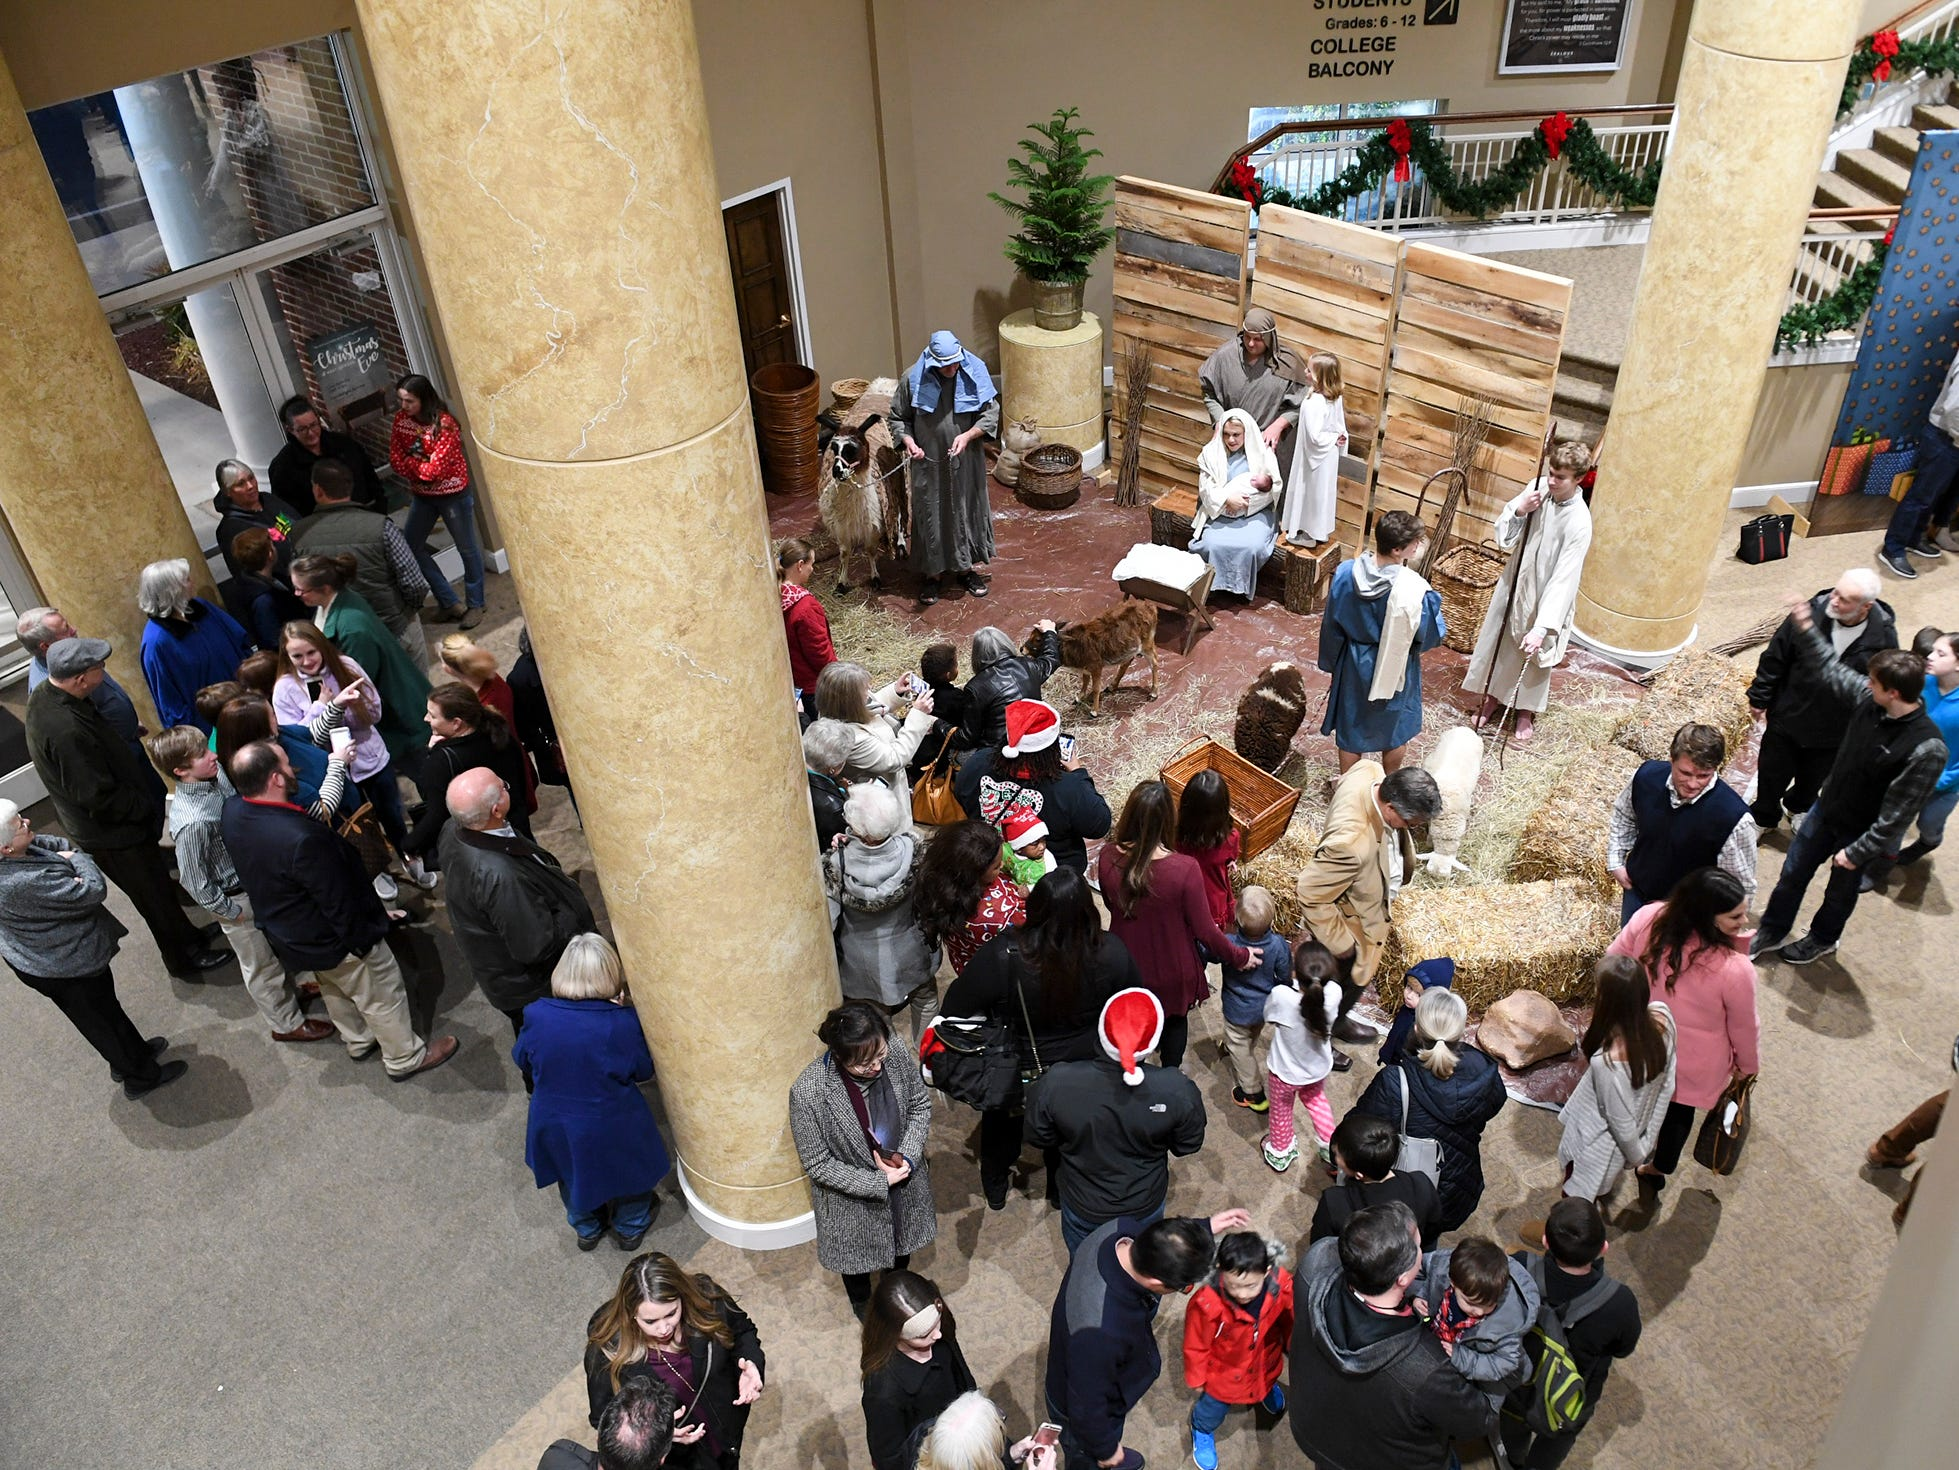 Guest gather at the entrance of West Jackson Baptist Church to view the live Nativity scene during Christmas Eve at West Jackson, Monday, December 24.